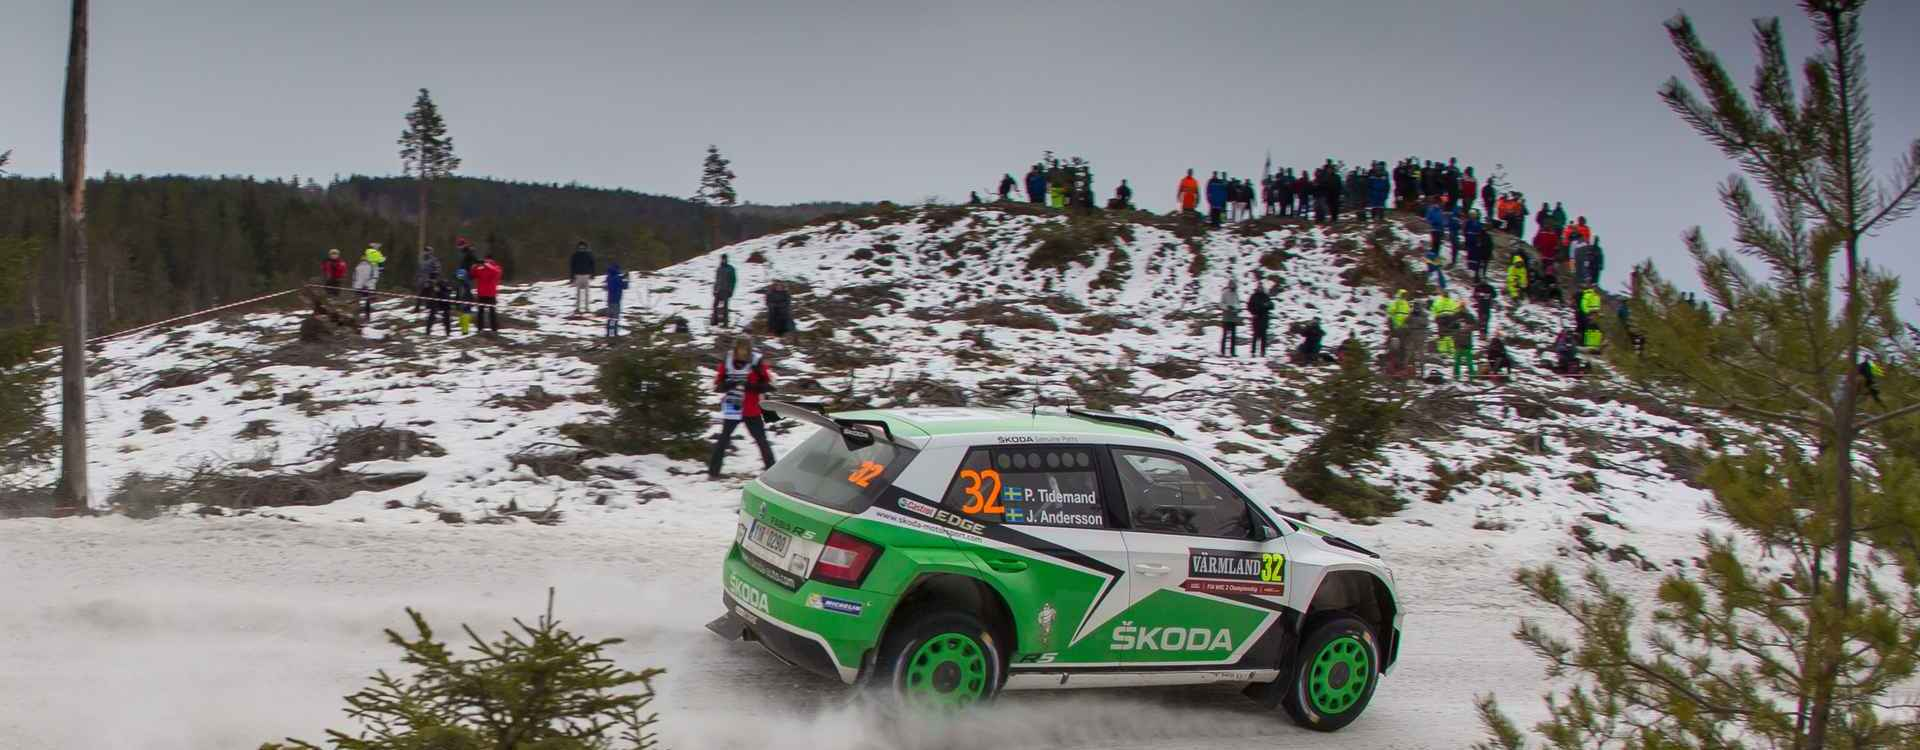 Rally Sweden: The start didn't go according to plan for ŠKODA Motorsport